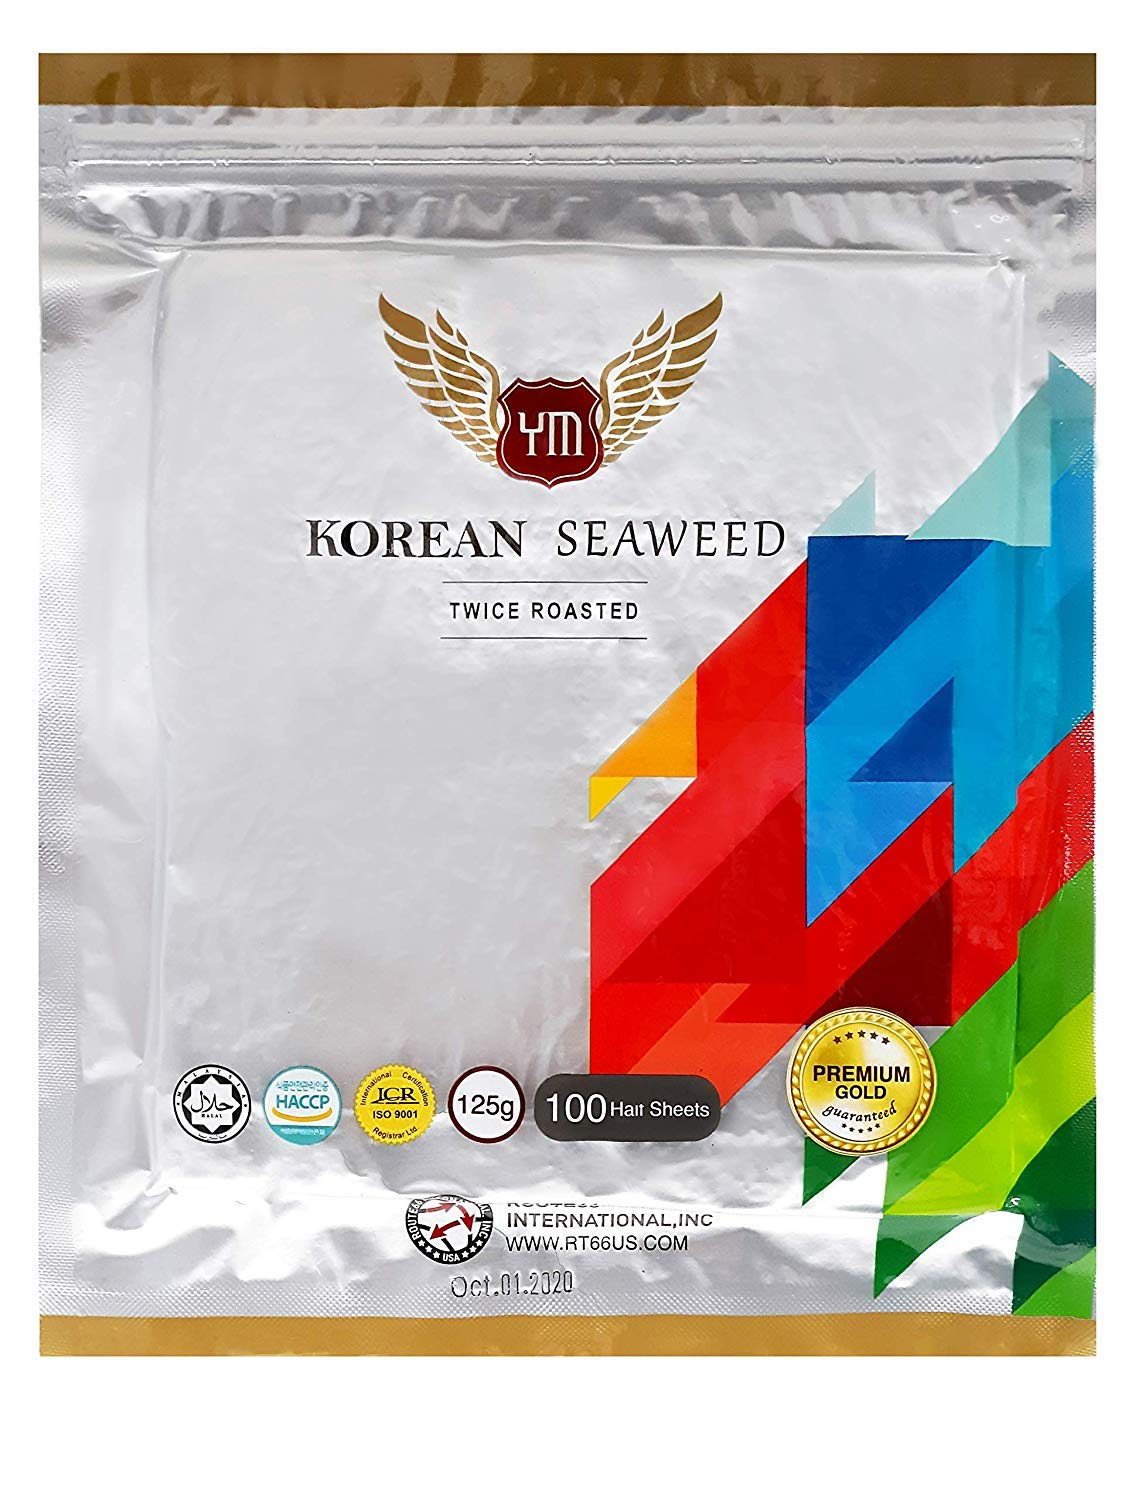 YM Korean Roasted Seaweed Premium Sushi Nori | Premium Gold Grade | Twice Roasted | 100% Natural Korean Seaweed | 100 Half Sheets (10 Packs) by YM (Image #1)